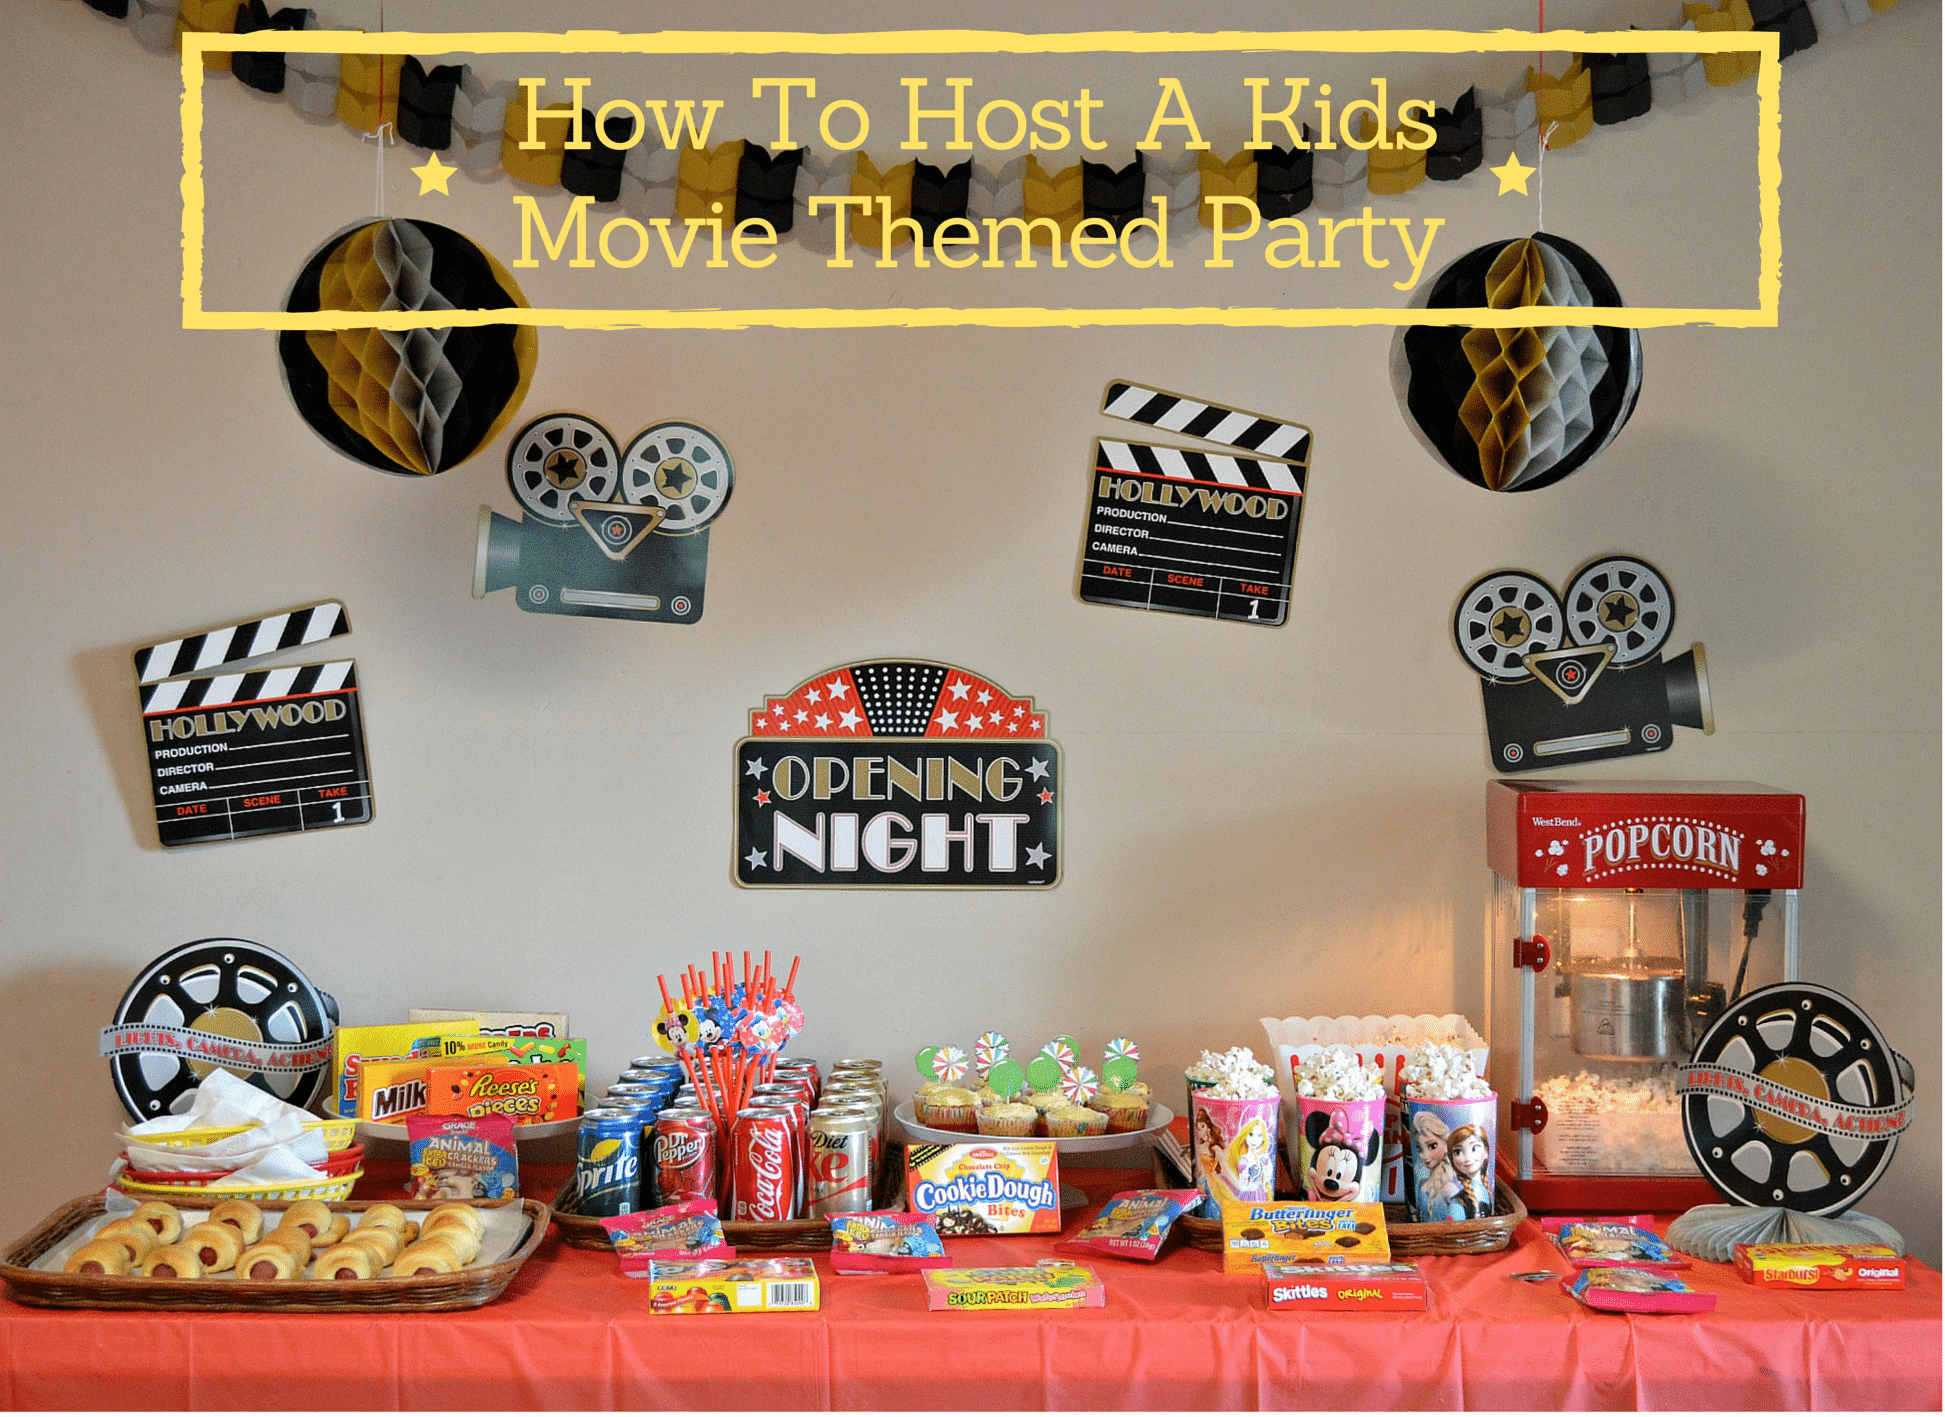 How To Host A Kids Movie Themed Party